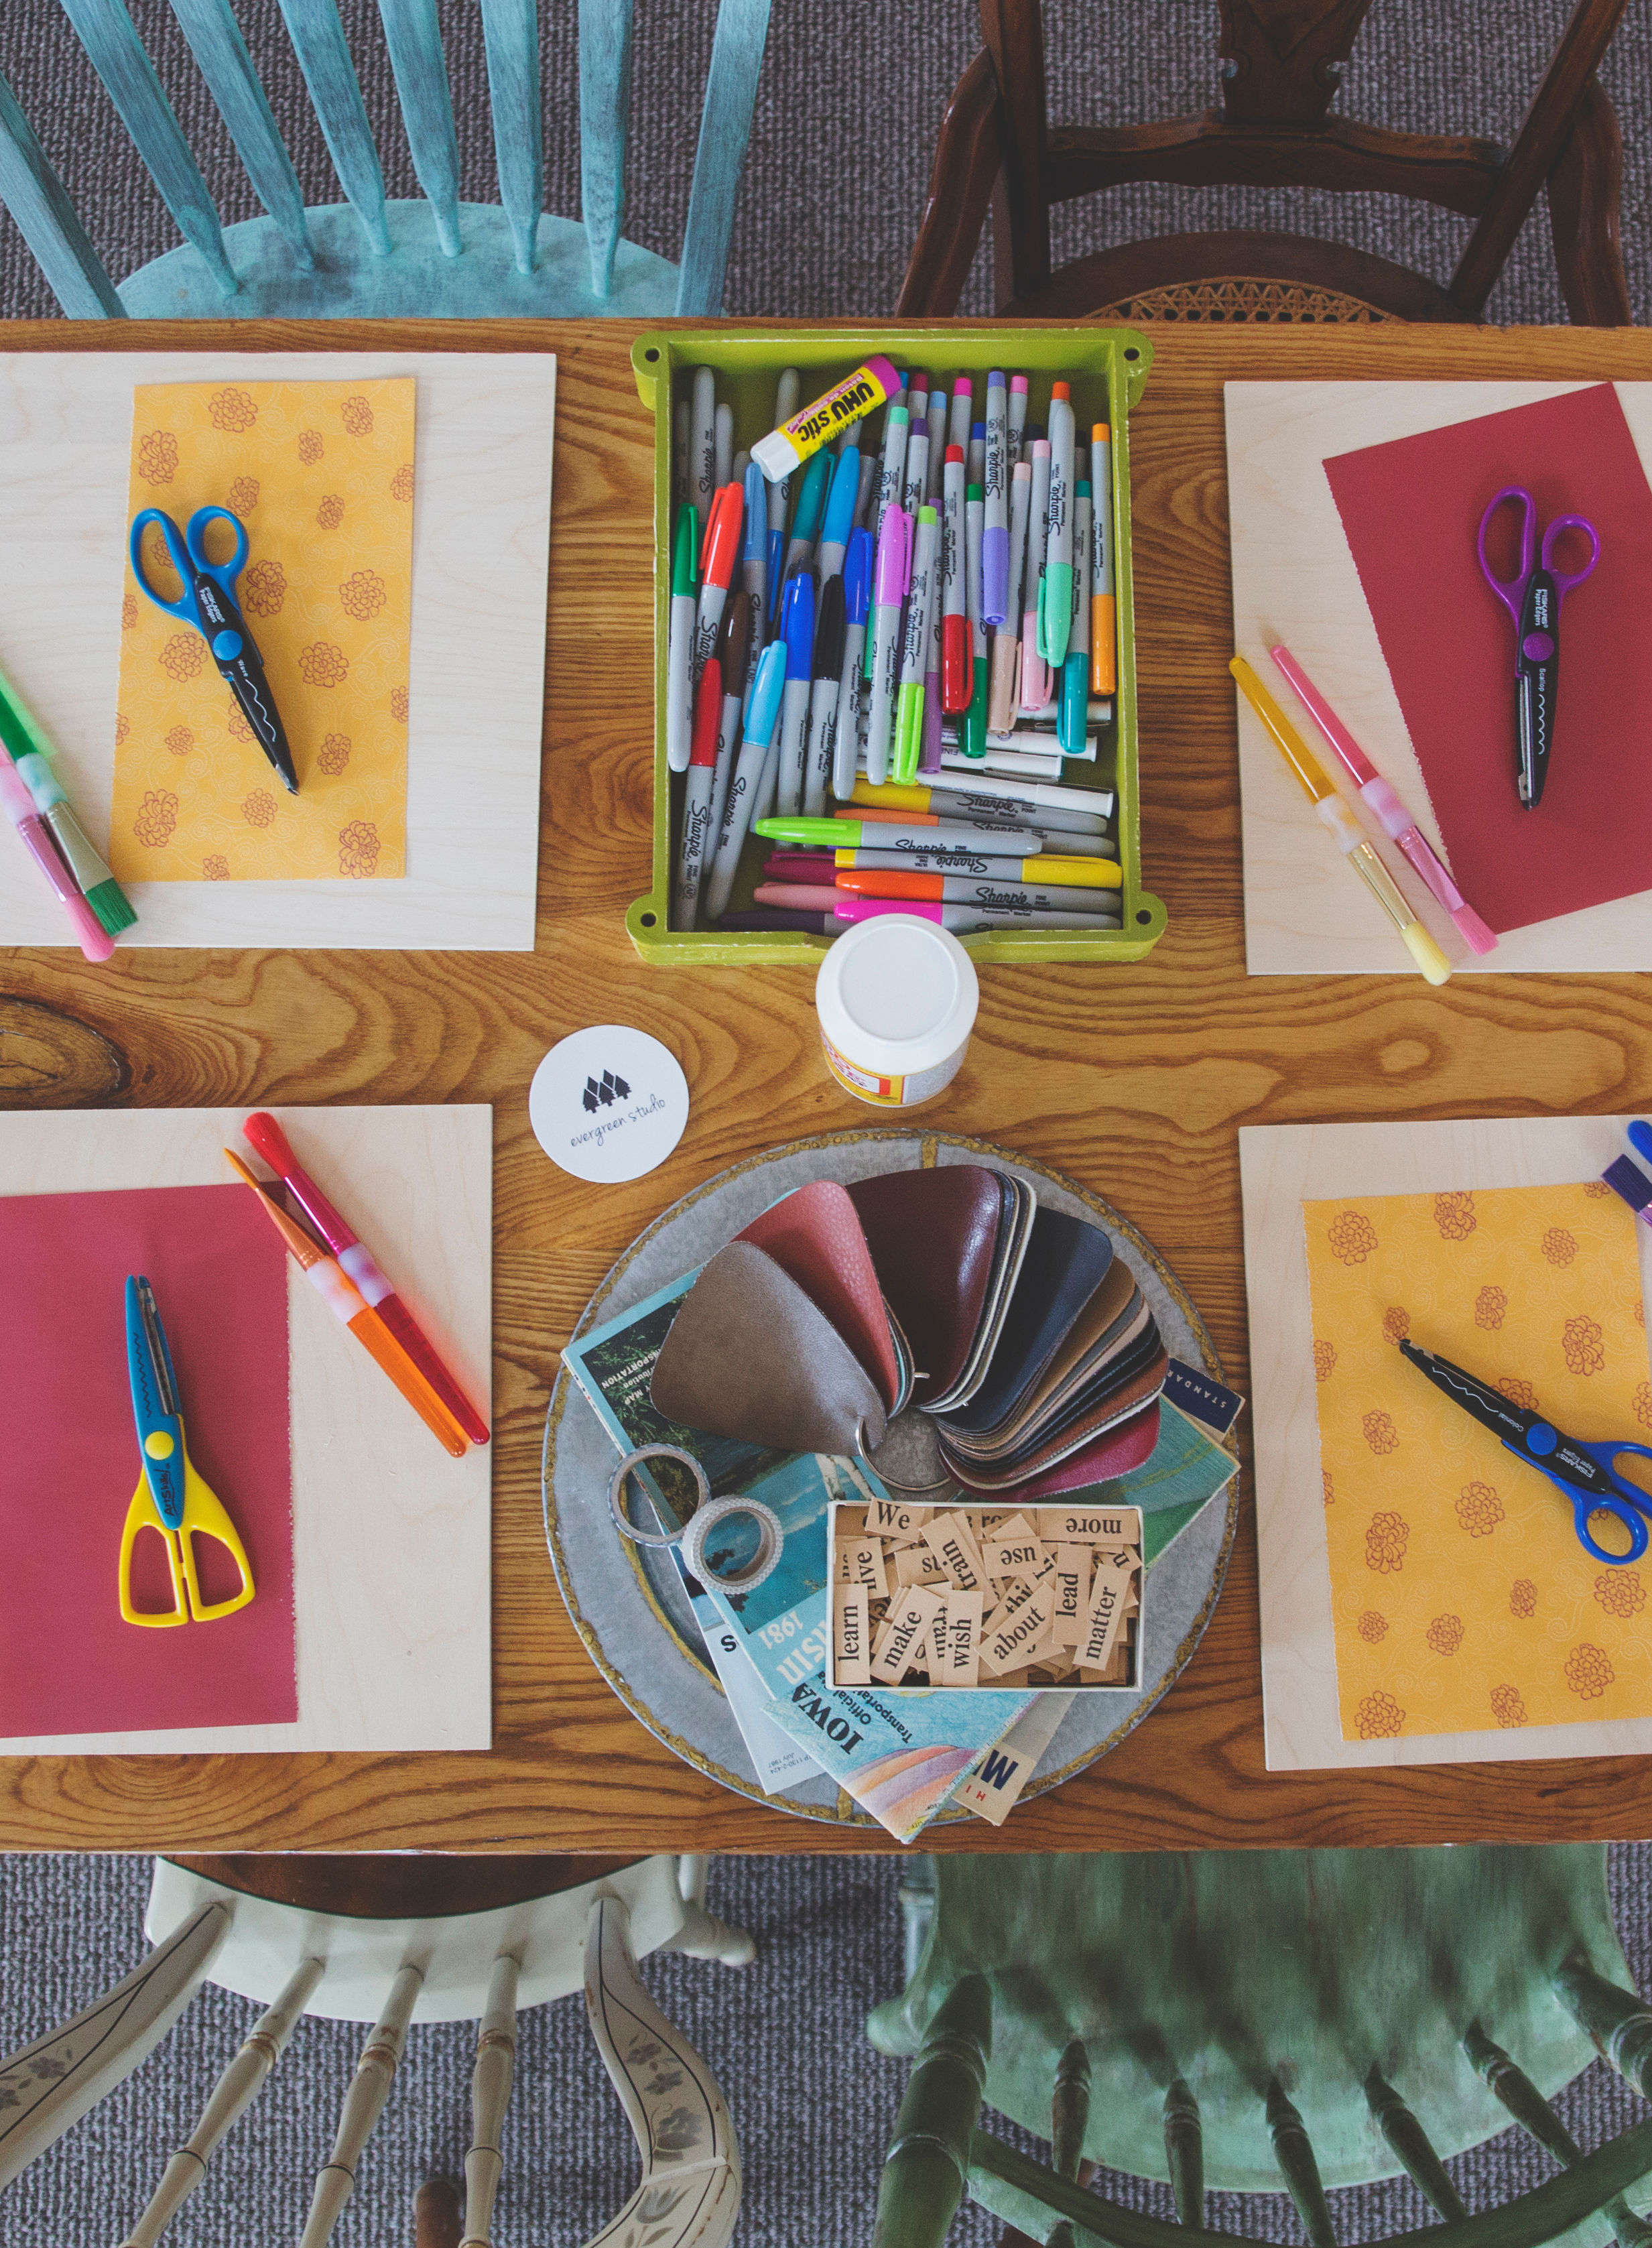 KidsOpen Studio - July 3rd, 10th, 17th, 24th - 3-4pm - $15.00What is Kids Open Studio?Open Studio times are a chance for children to think creatively and problem solve while being responsible for their own choices and ideas.They are invited to use materials in the studio to create their own ideas at their own pace.Stations are set up to stimulate creativity and the teacher supports ideas and facilitates projects.Kids Open Studio times are about having a safe, inspiring place to create!If you would like to leave your child at the studio during class, they must be 5 years or older. Any age can attend with parent help/supervision!Enrollment is limited to 15 per class. Please head to PAYMENTS page to register!